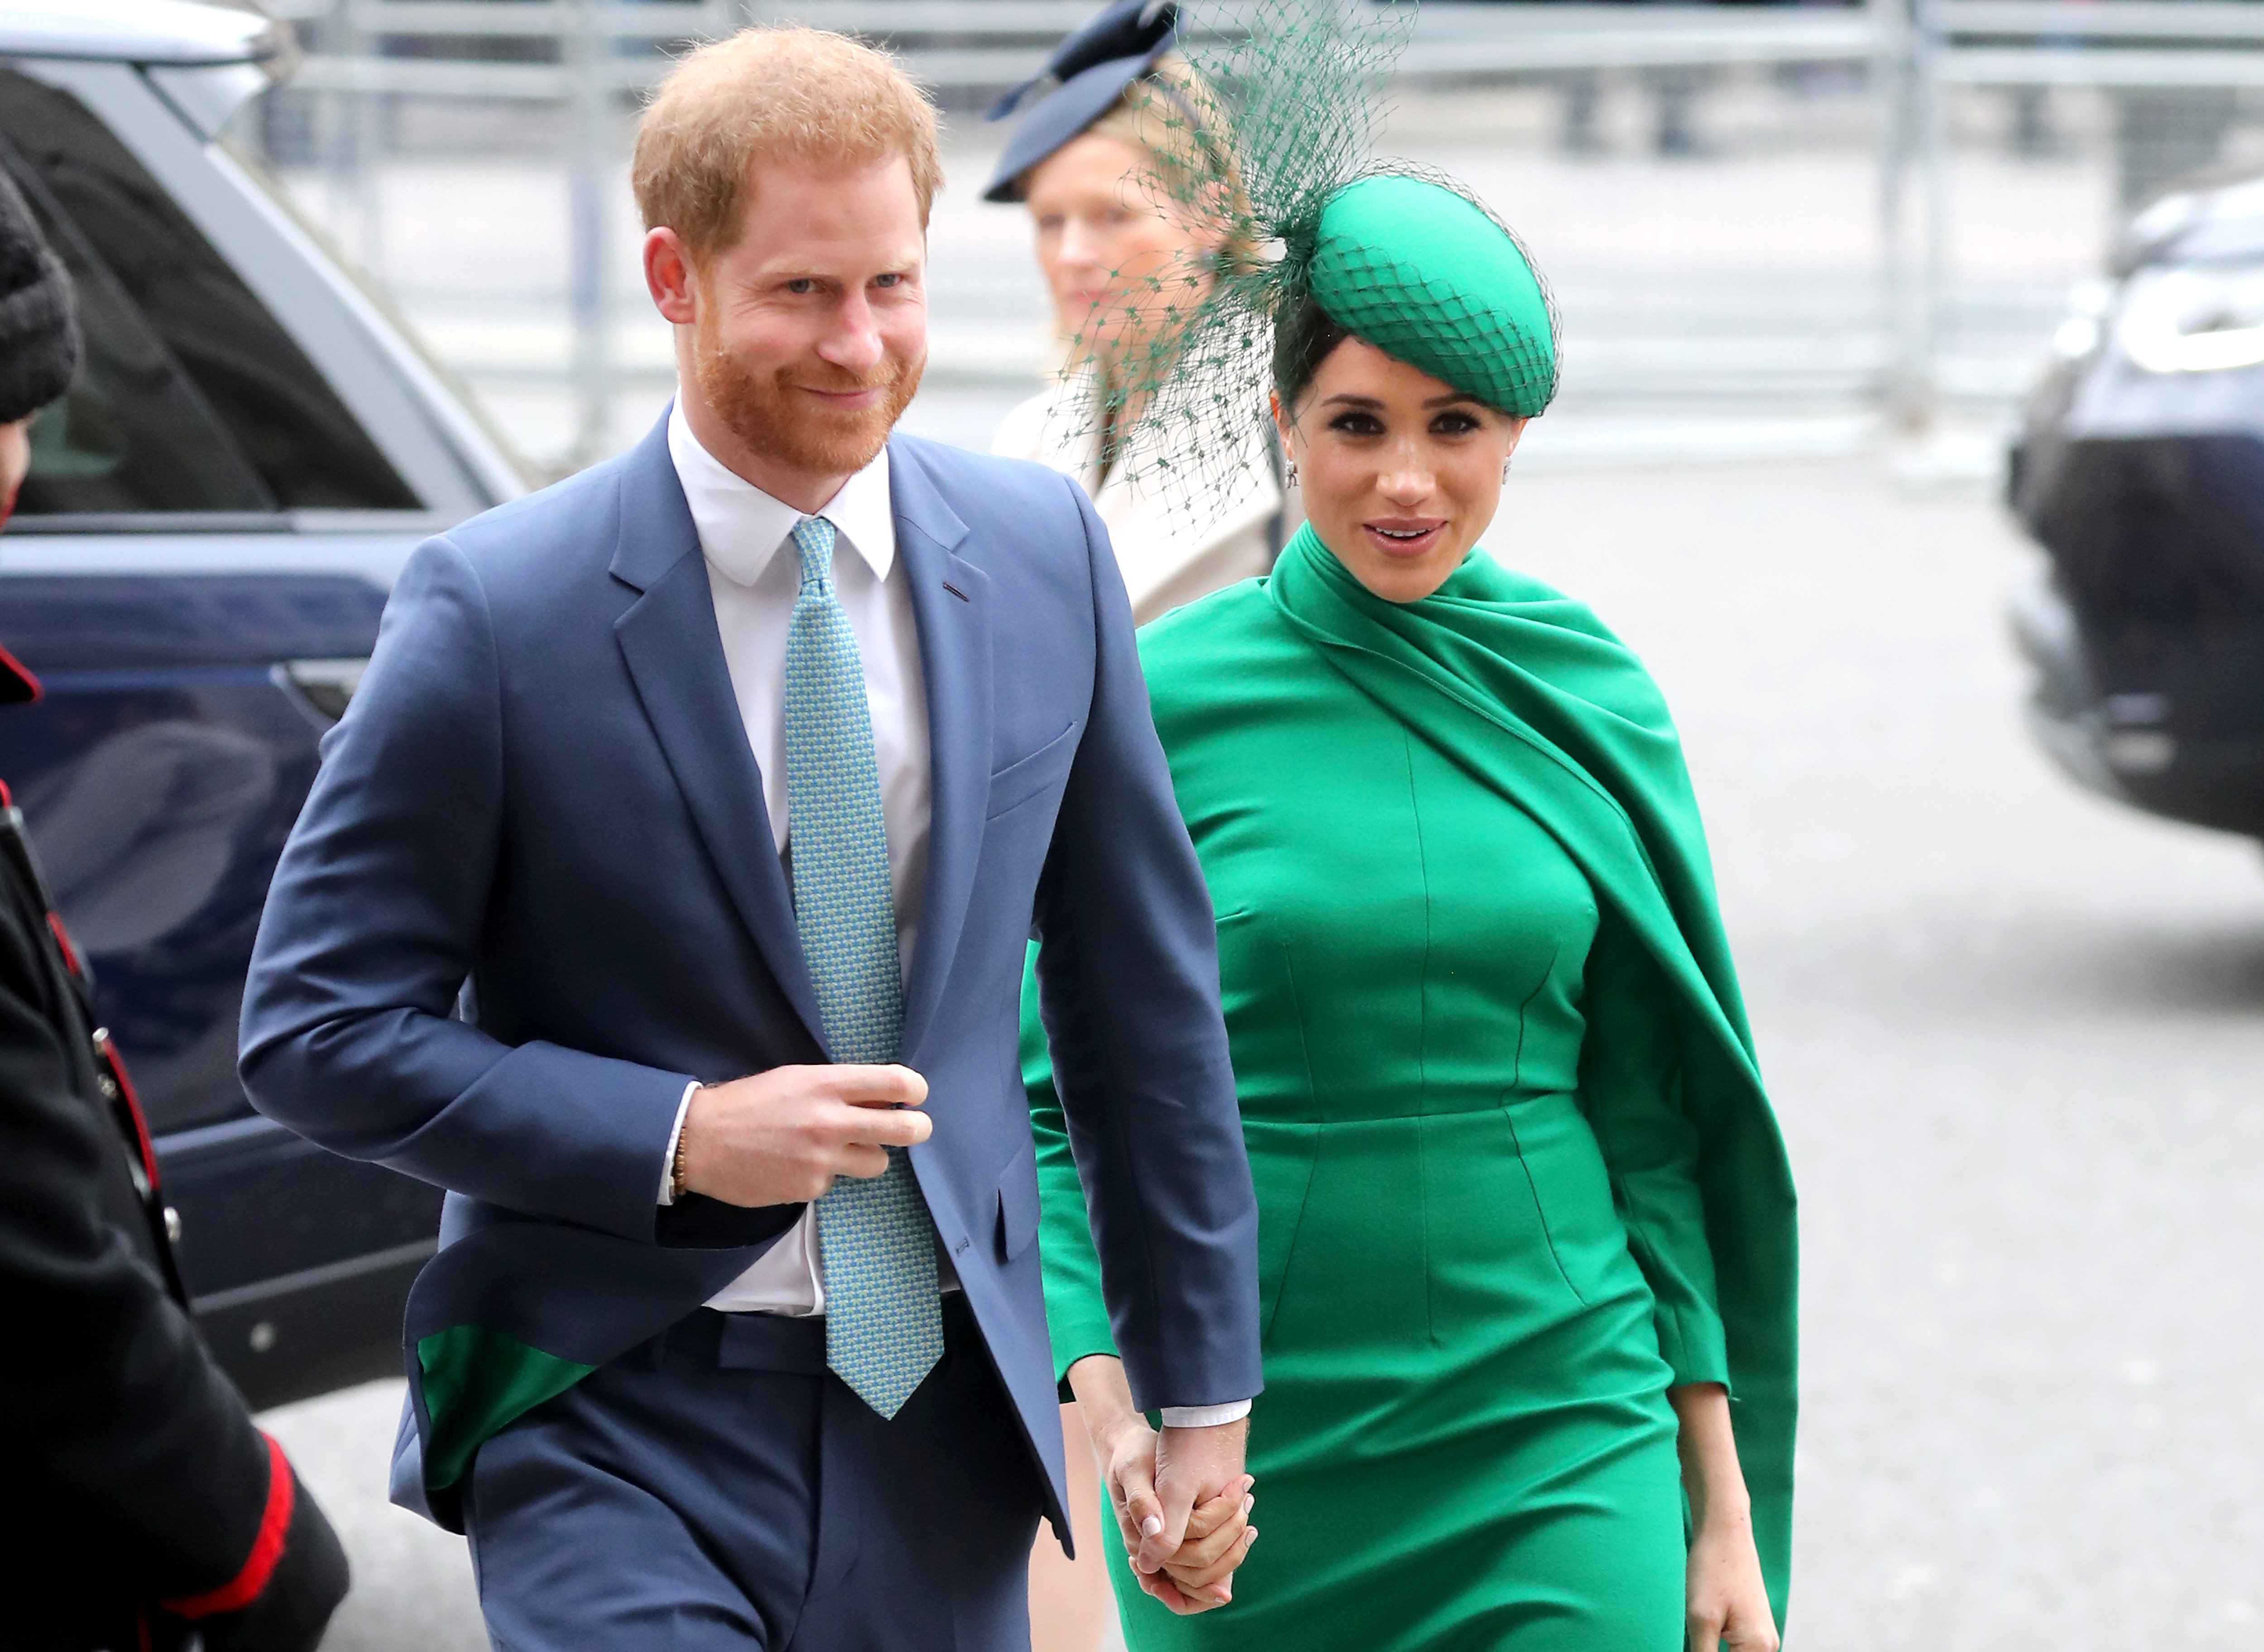 Prince Harry, Duke of Sussex and Meghan, Duchess of Sussex attend the Commonwealth Day Service 2020 at Westminster Abbey on March 09, 2020 in London, England.   Source: Getty Images